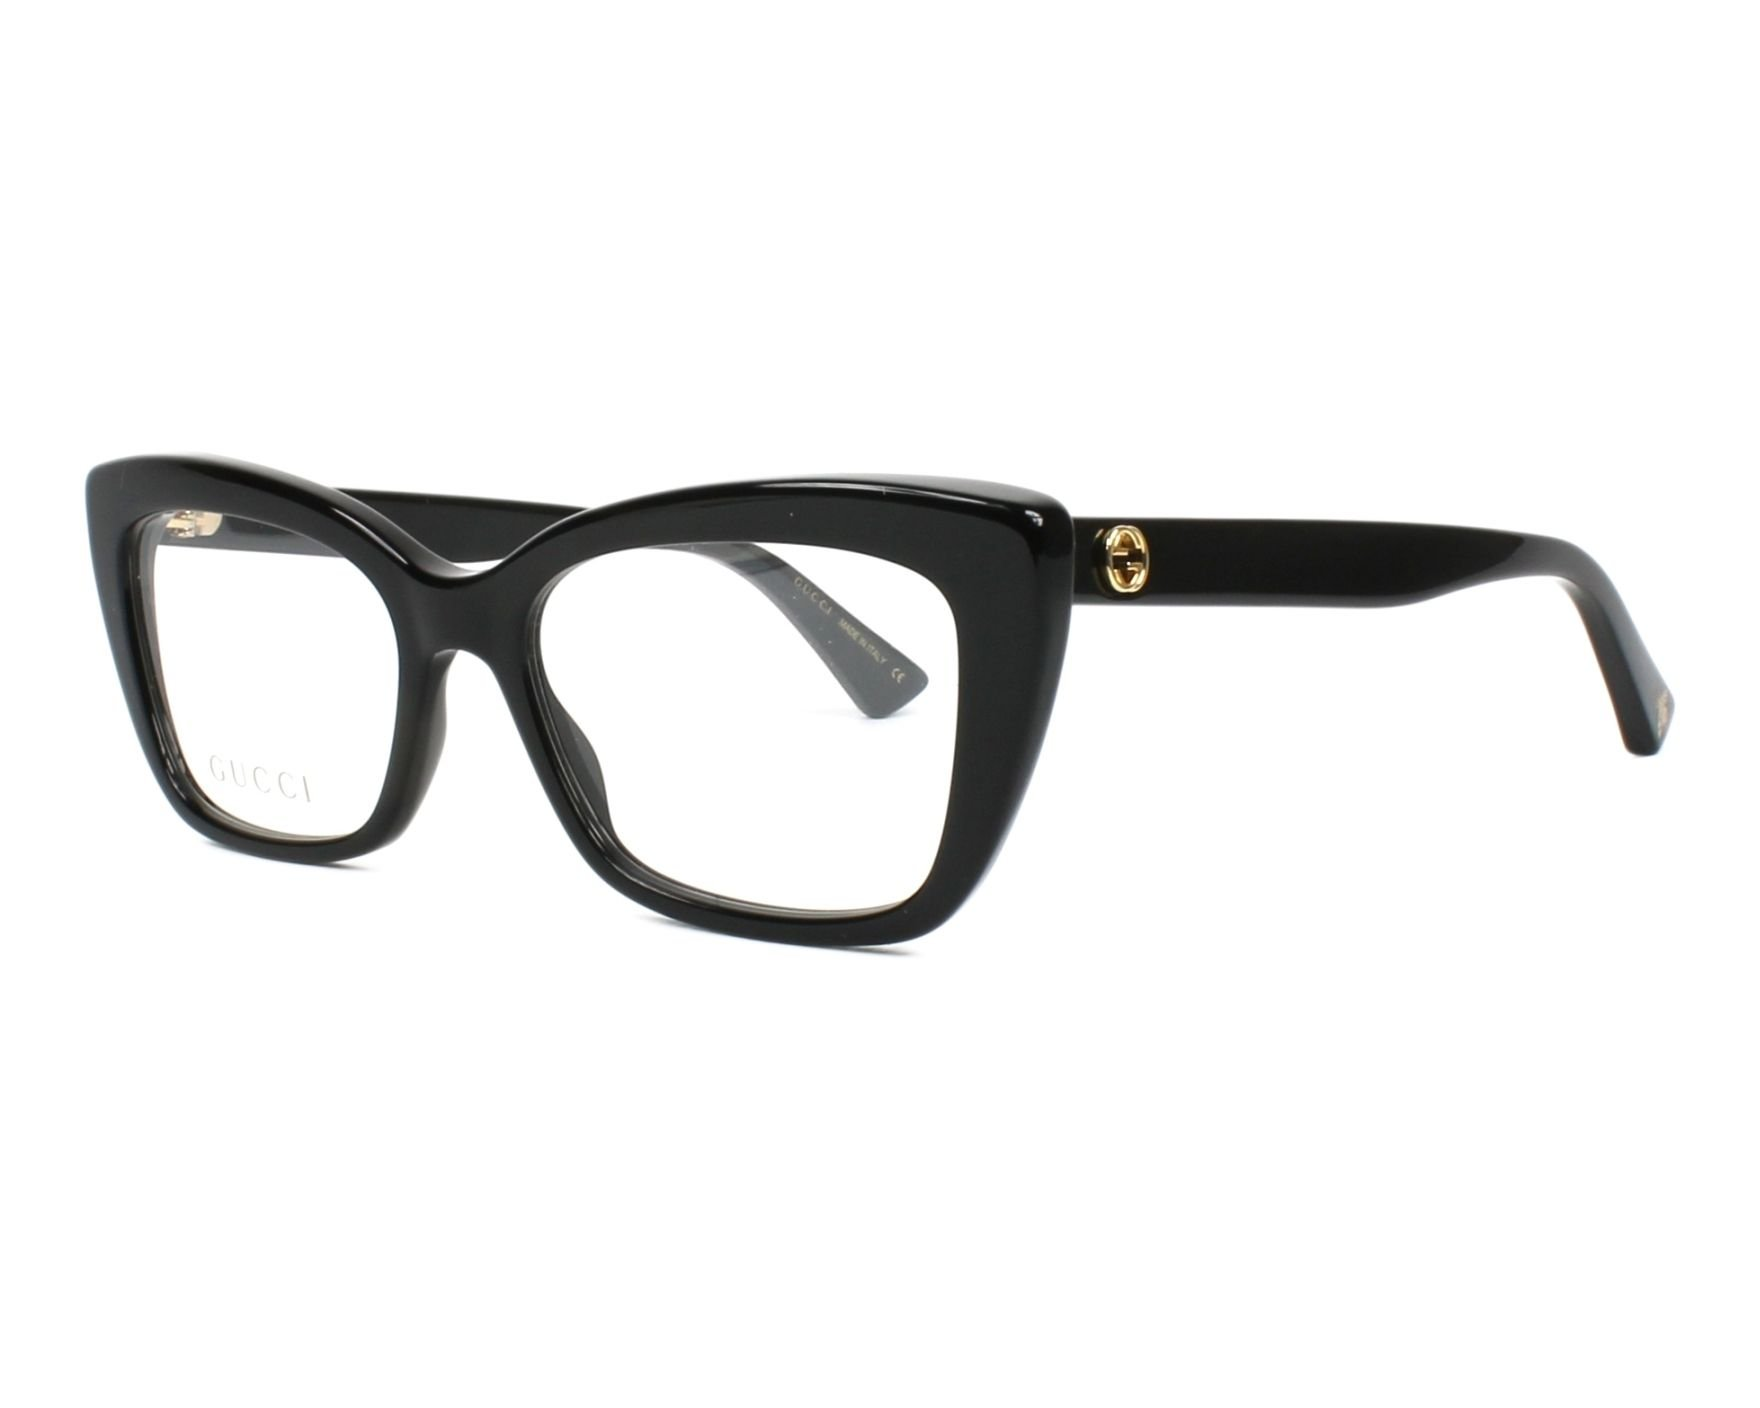 Gucci GG0165O Women's Fashion Eyeglasses 51 mm